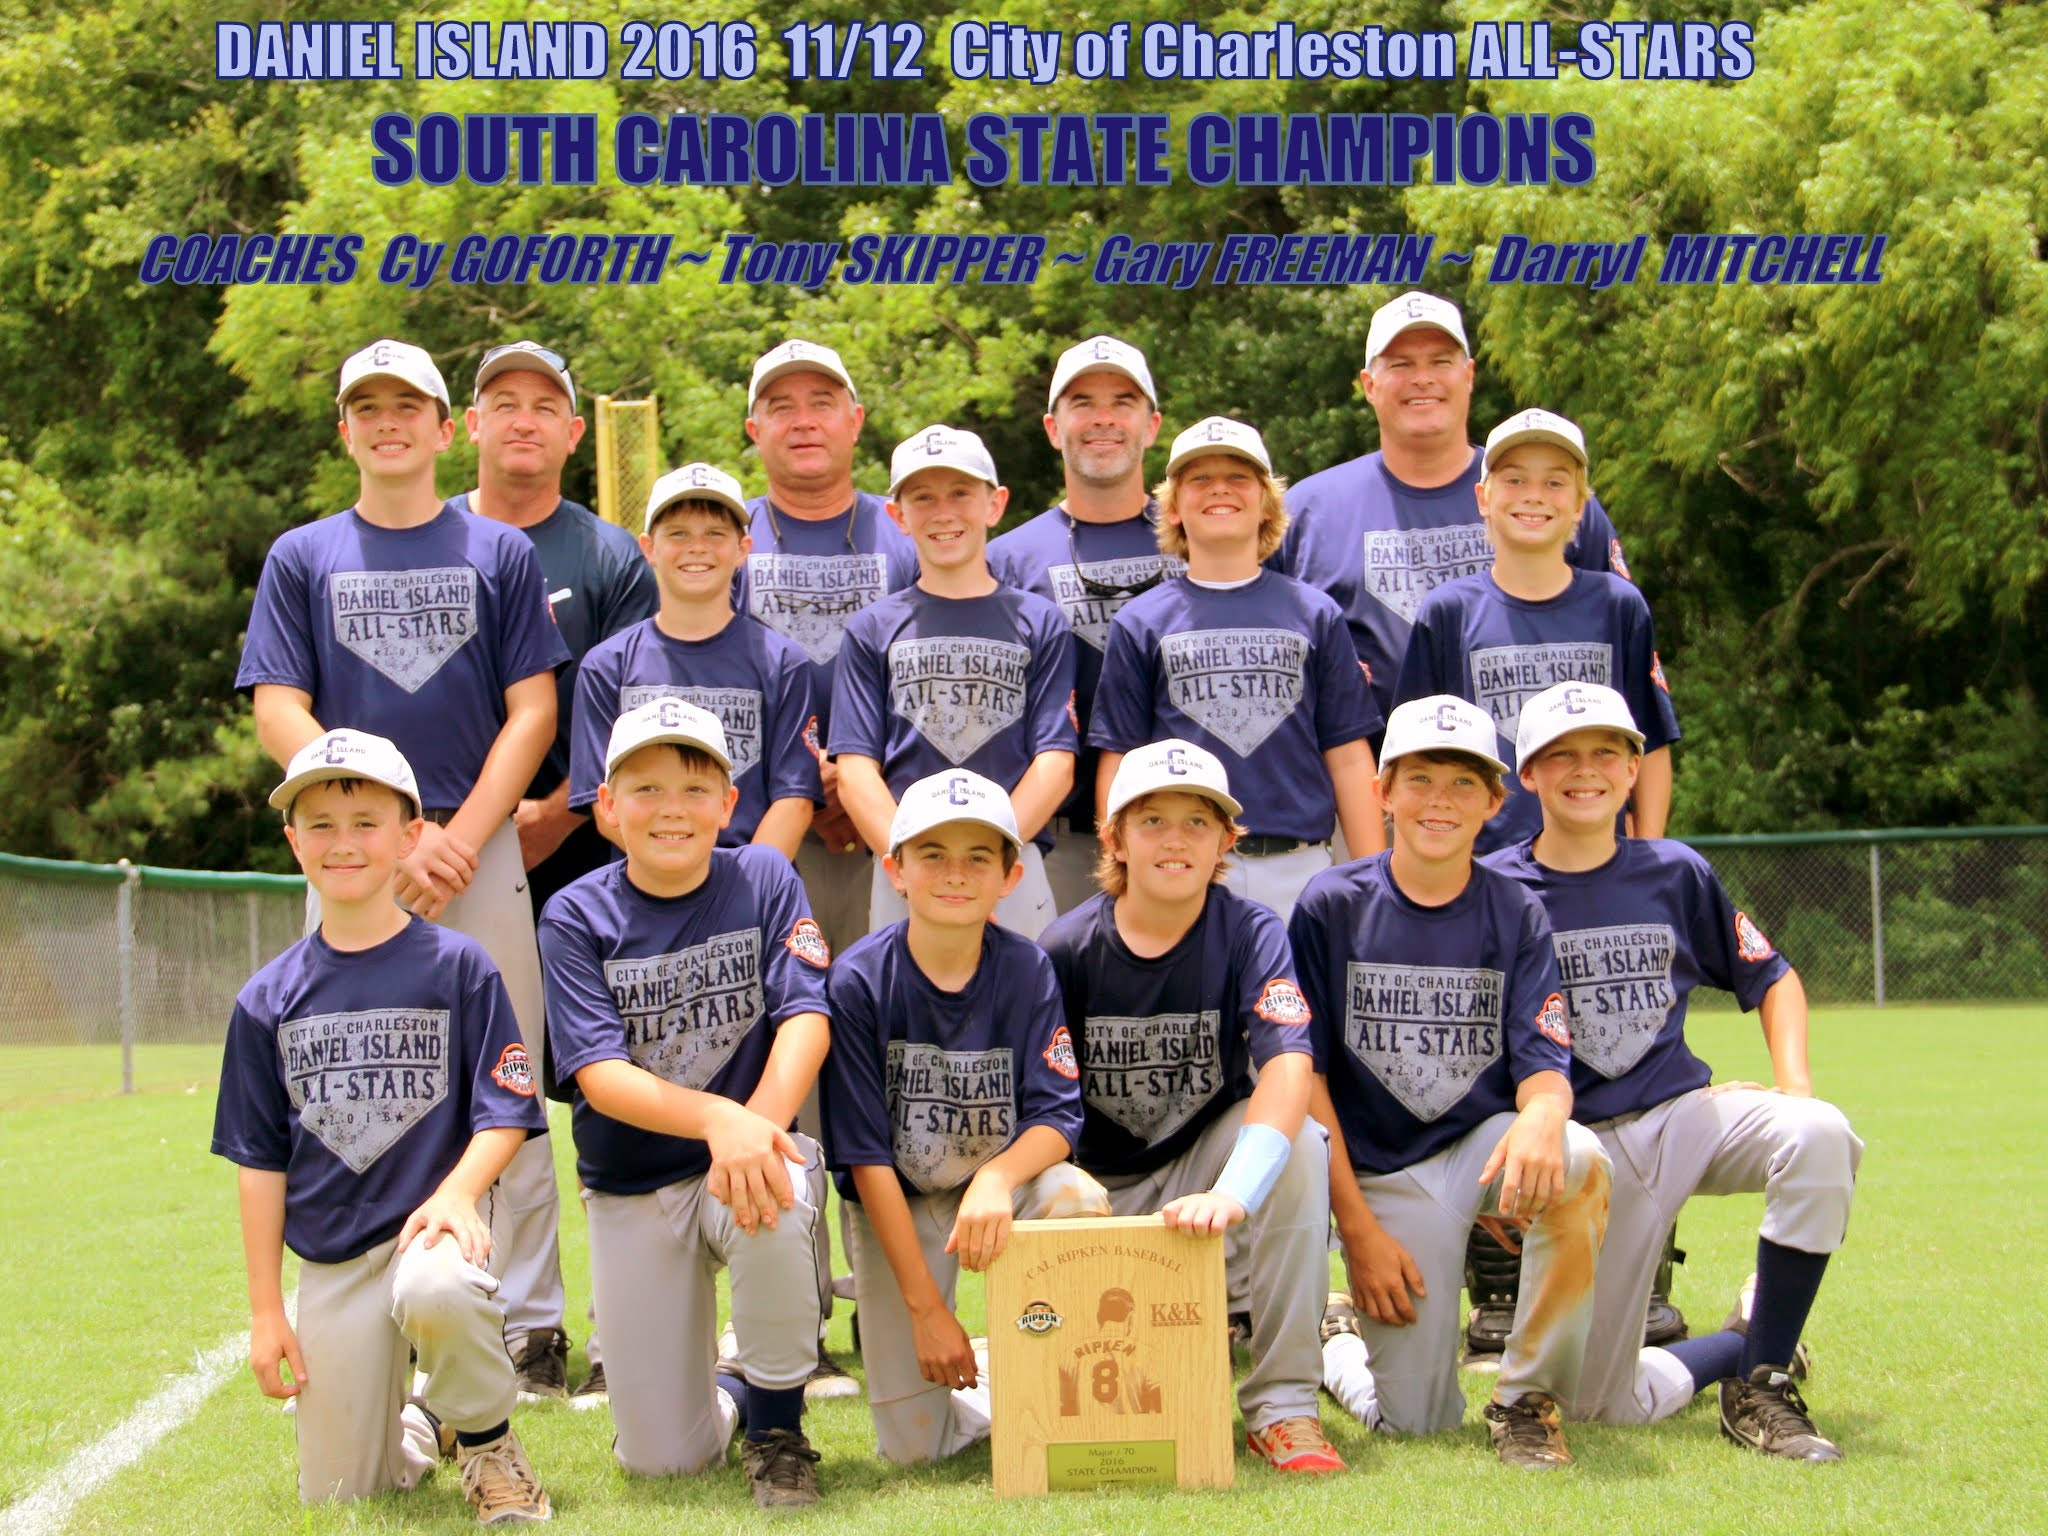 DI /Charleston / SC Dogs All Stars 2016